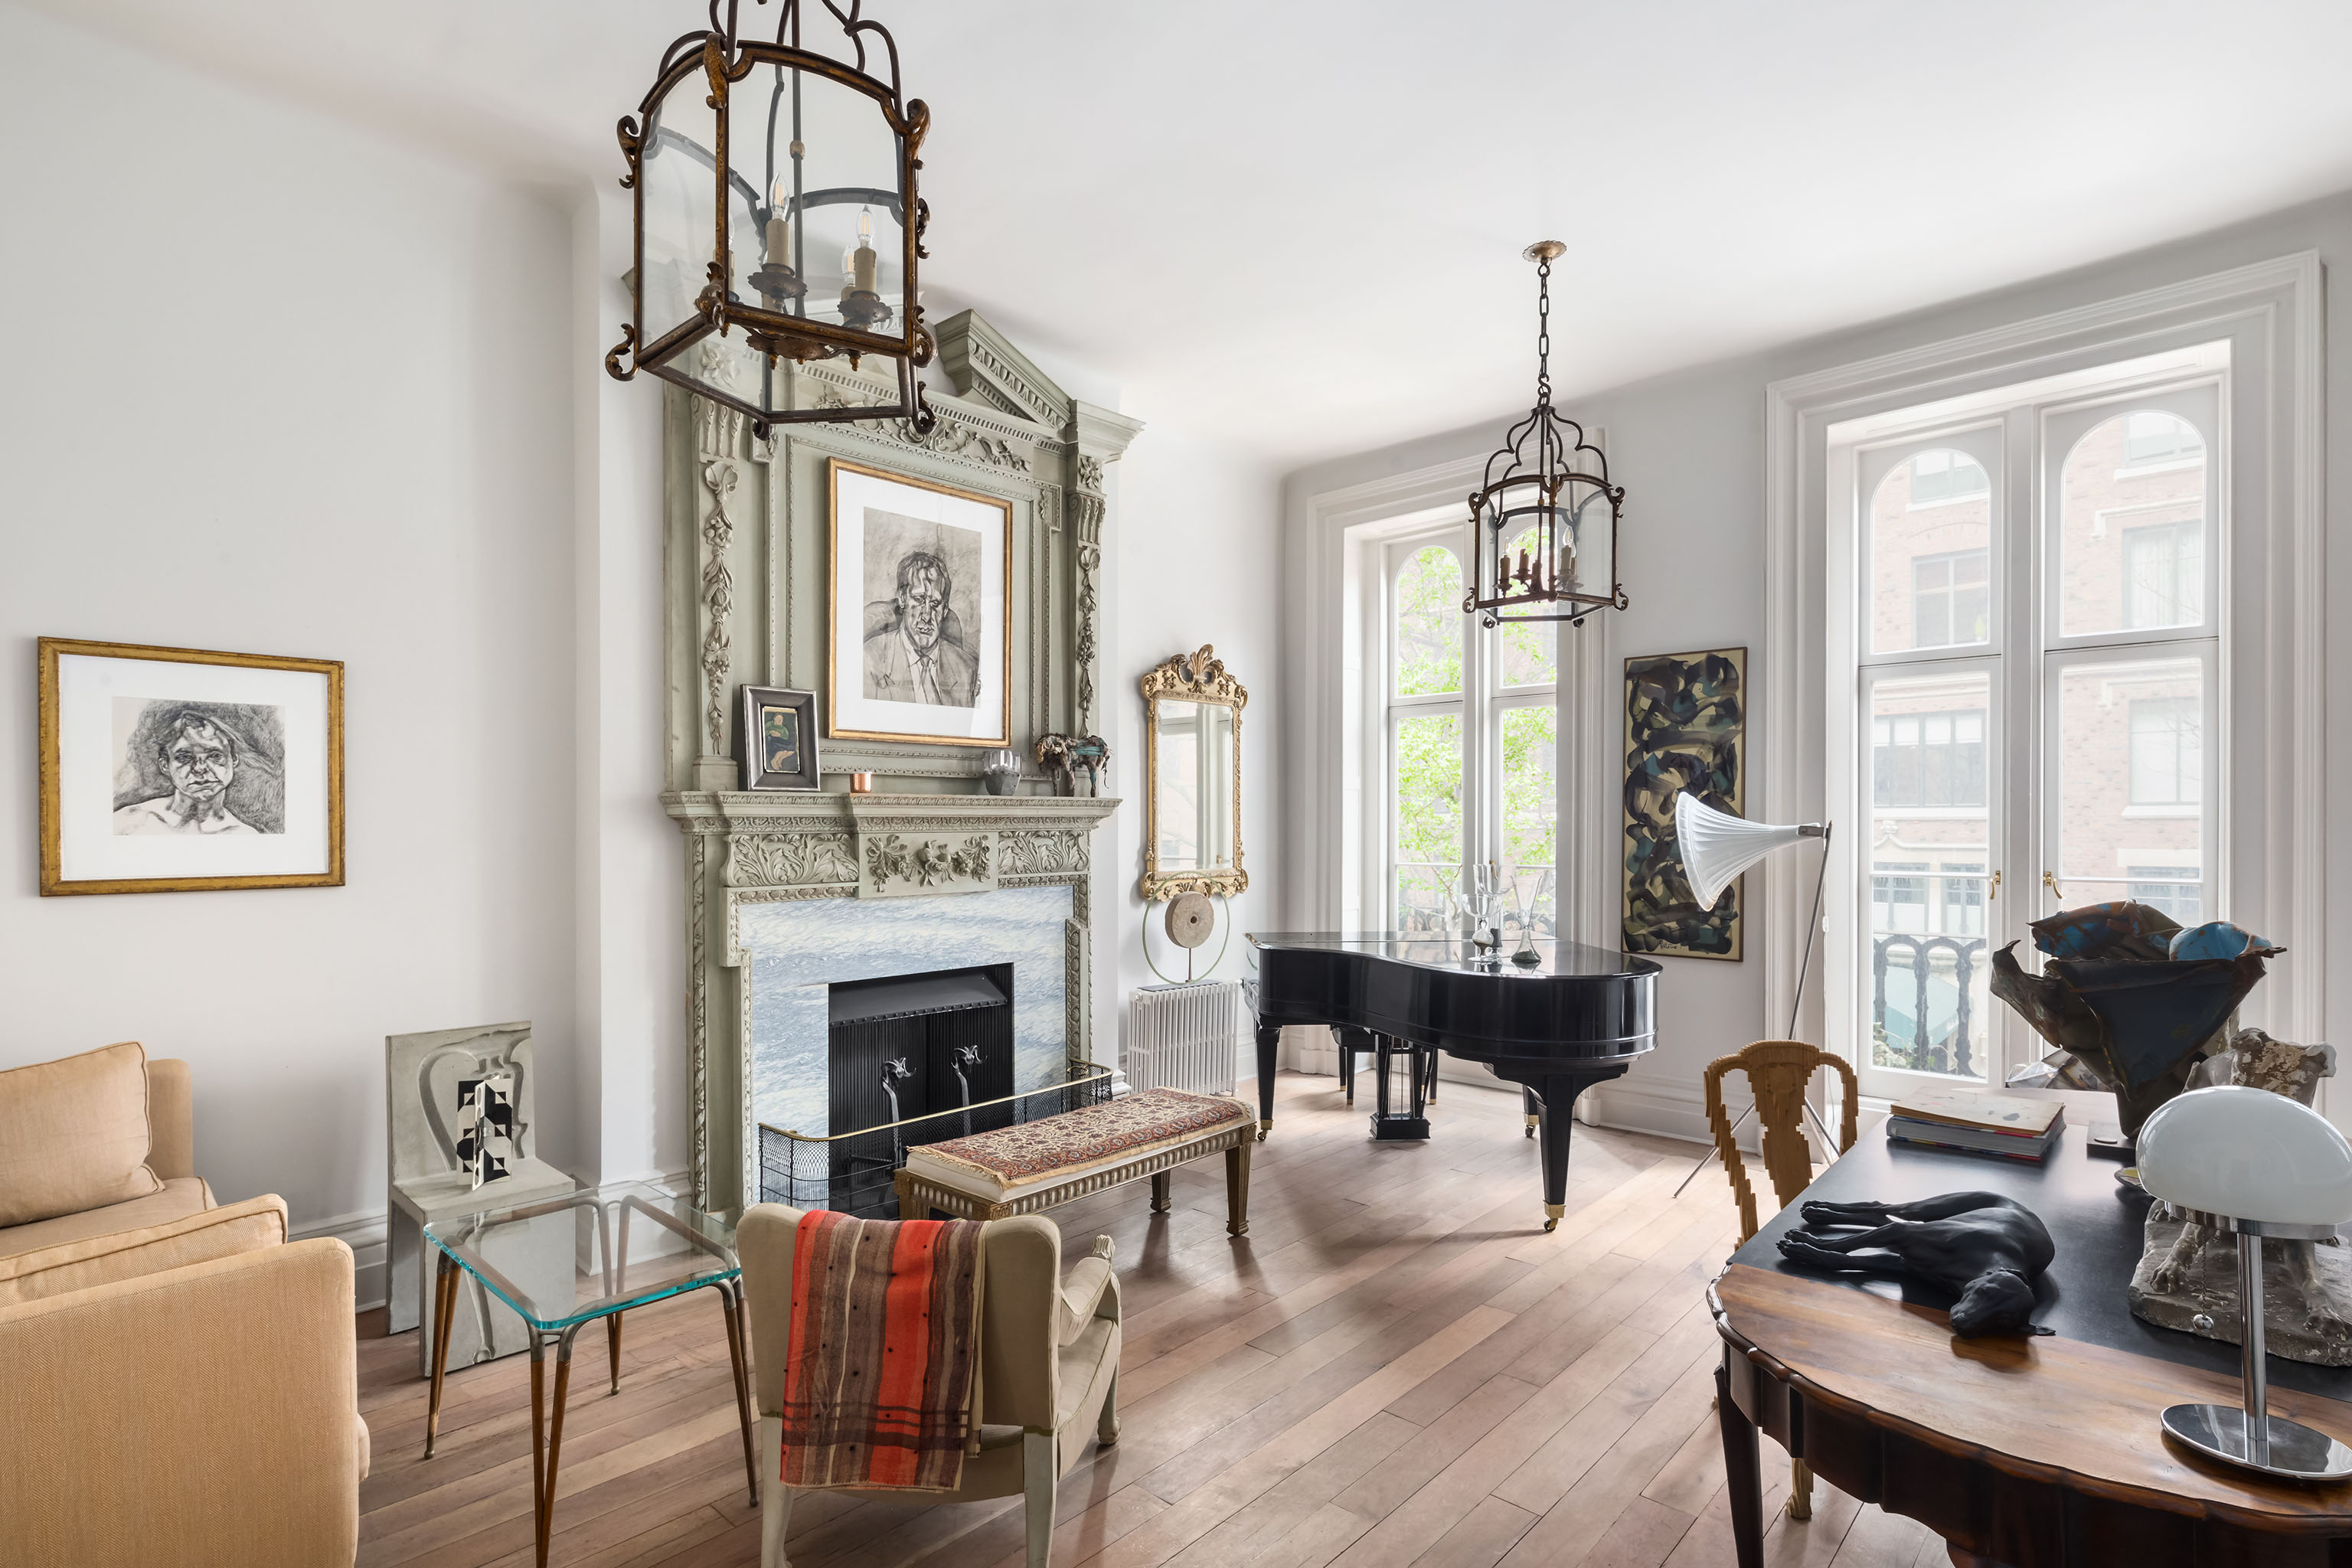 House of the Week: Former Urban Outfitters' CEO's Greenwich Village Town House